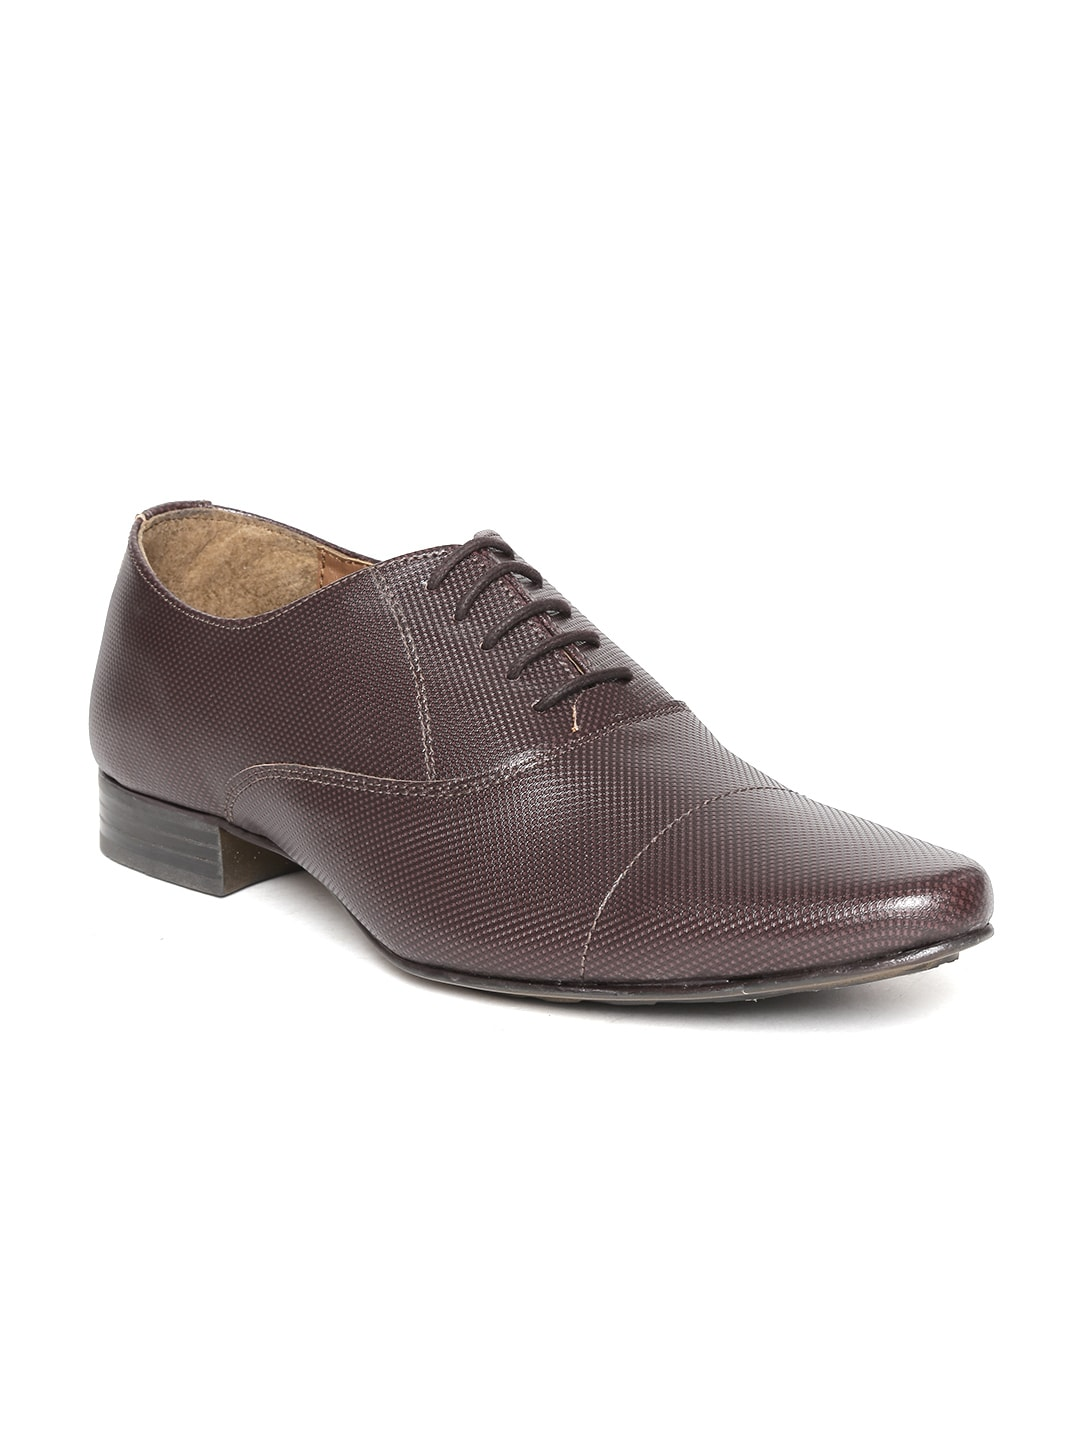 Knotty Derby by Arden Men Coffee Brown Formal Shoes image